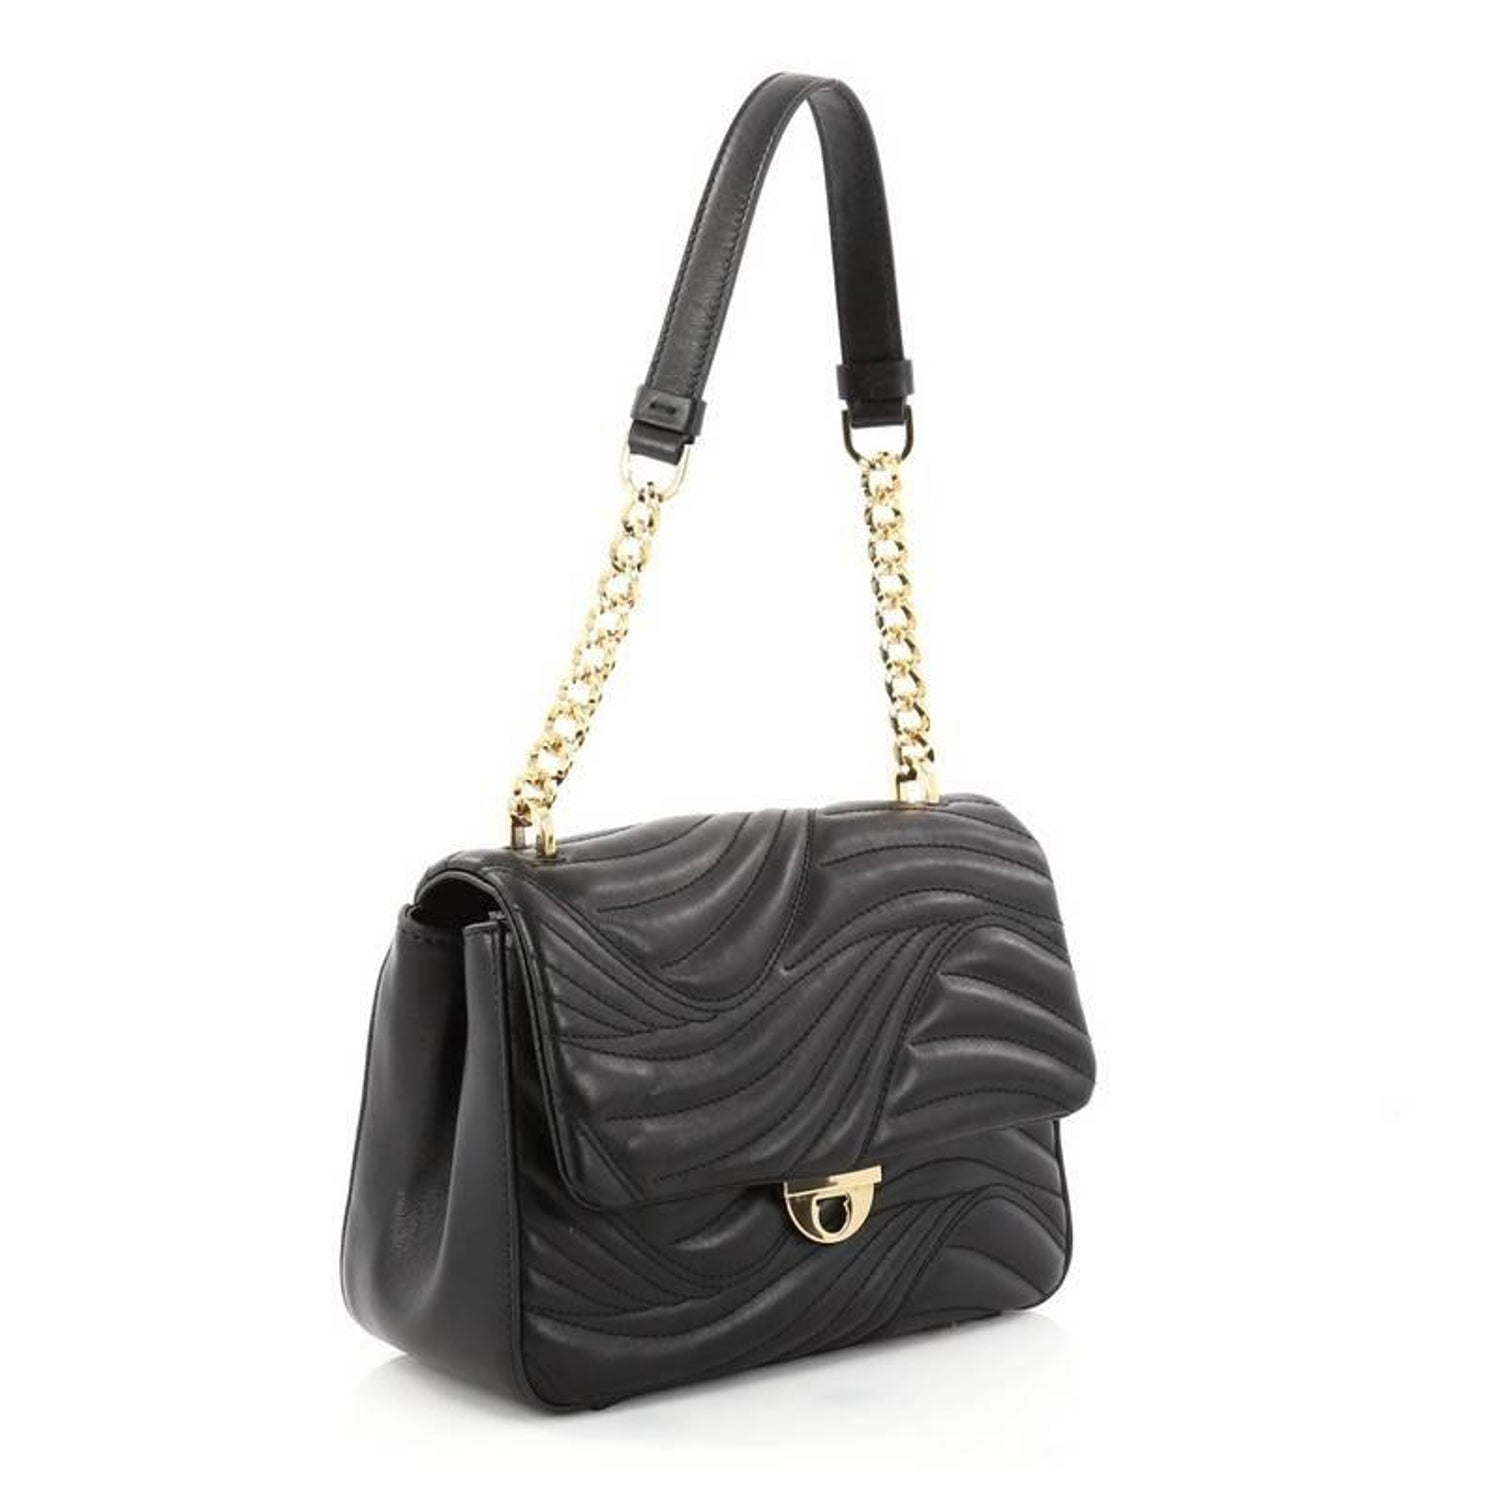 Salvatore Ferragamo Lexi Shoulder Bag Quilted Leather Small at 1stdibs b524f34b17